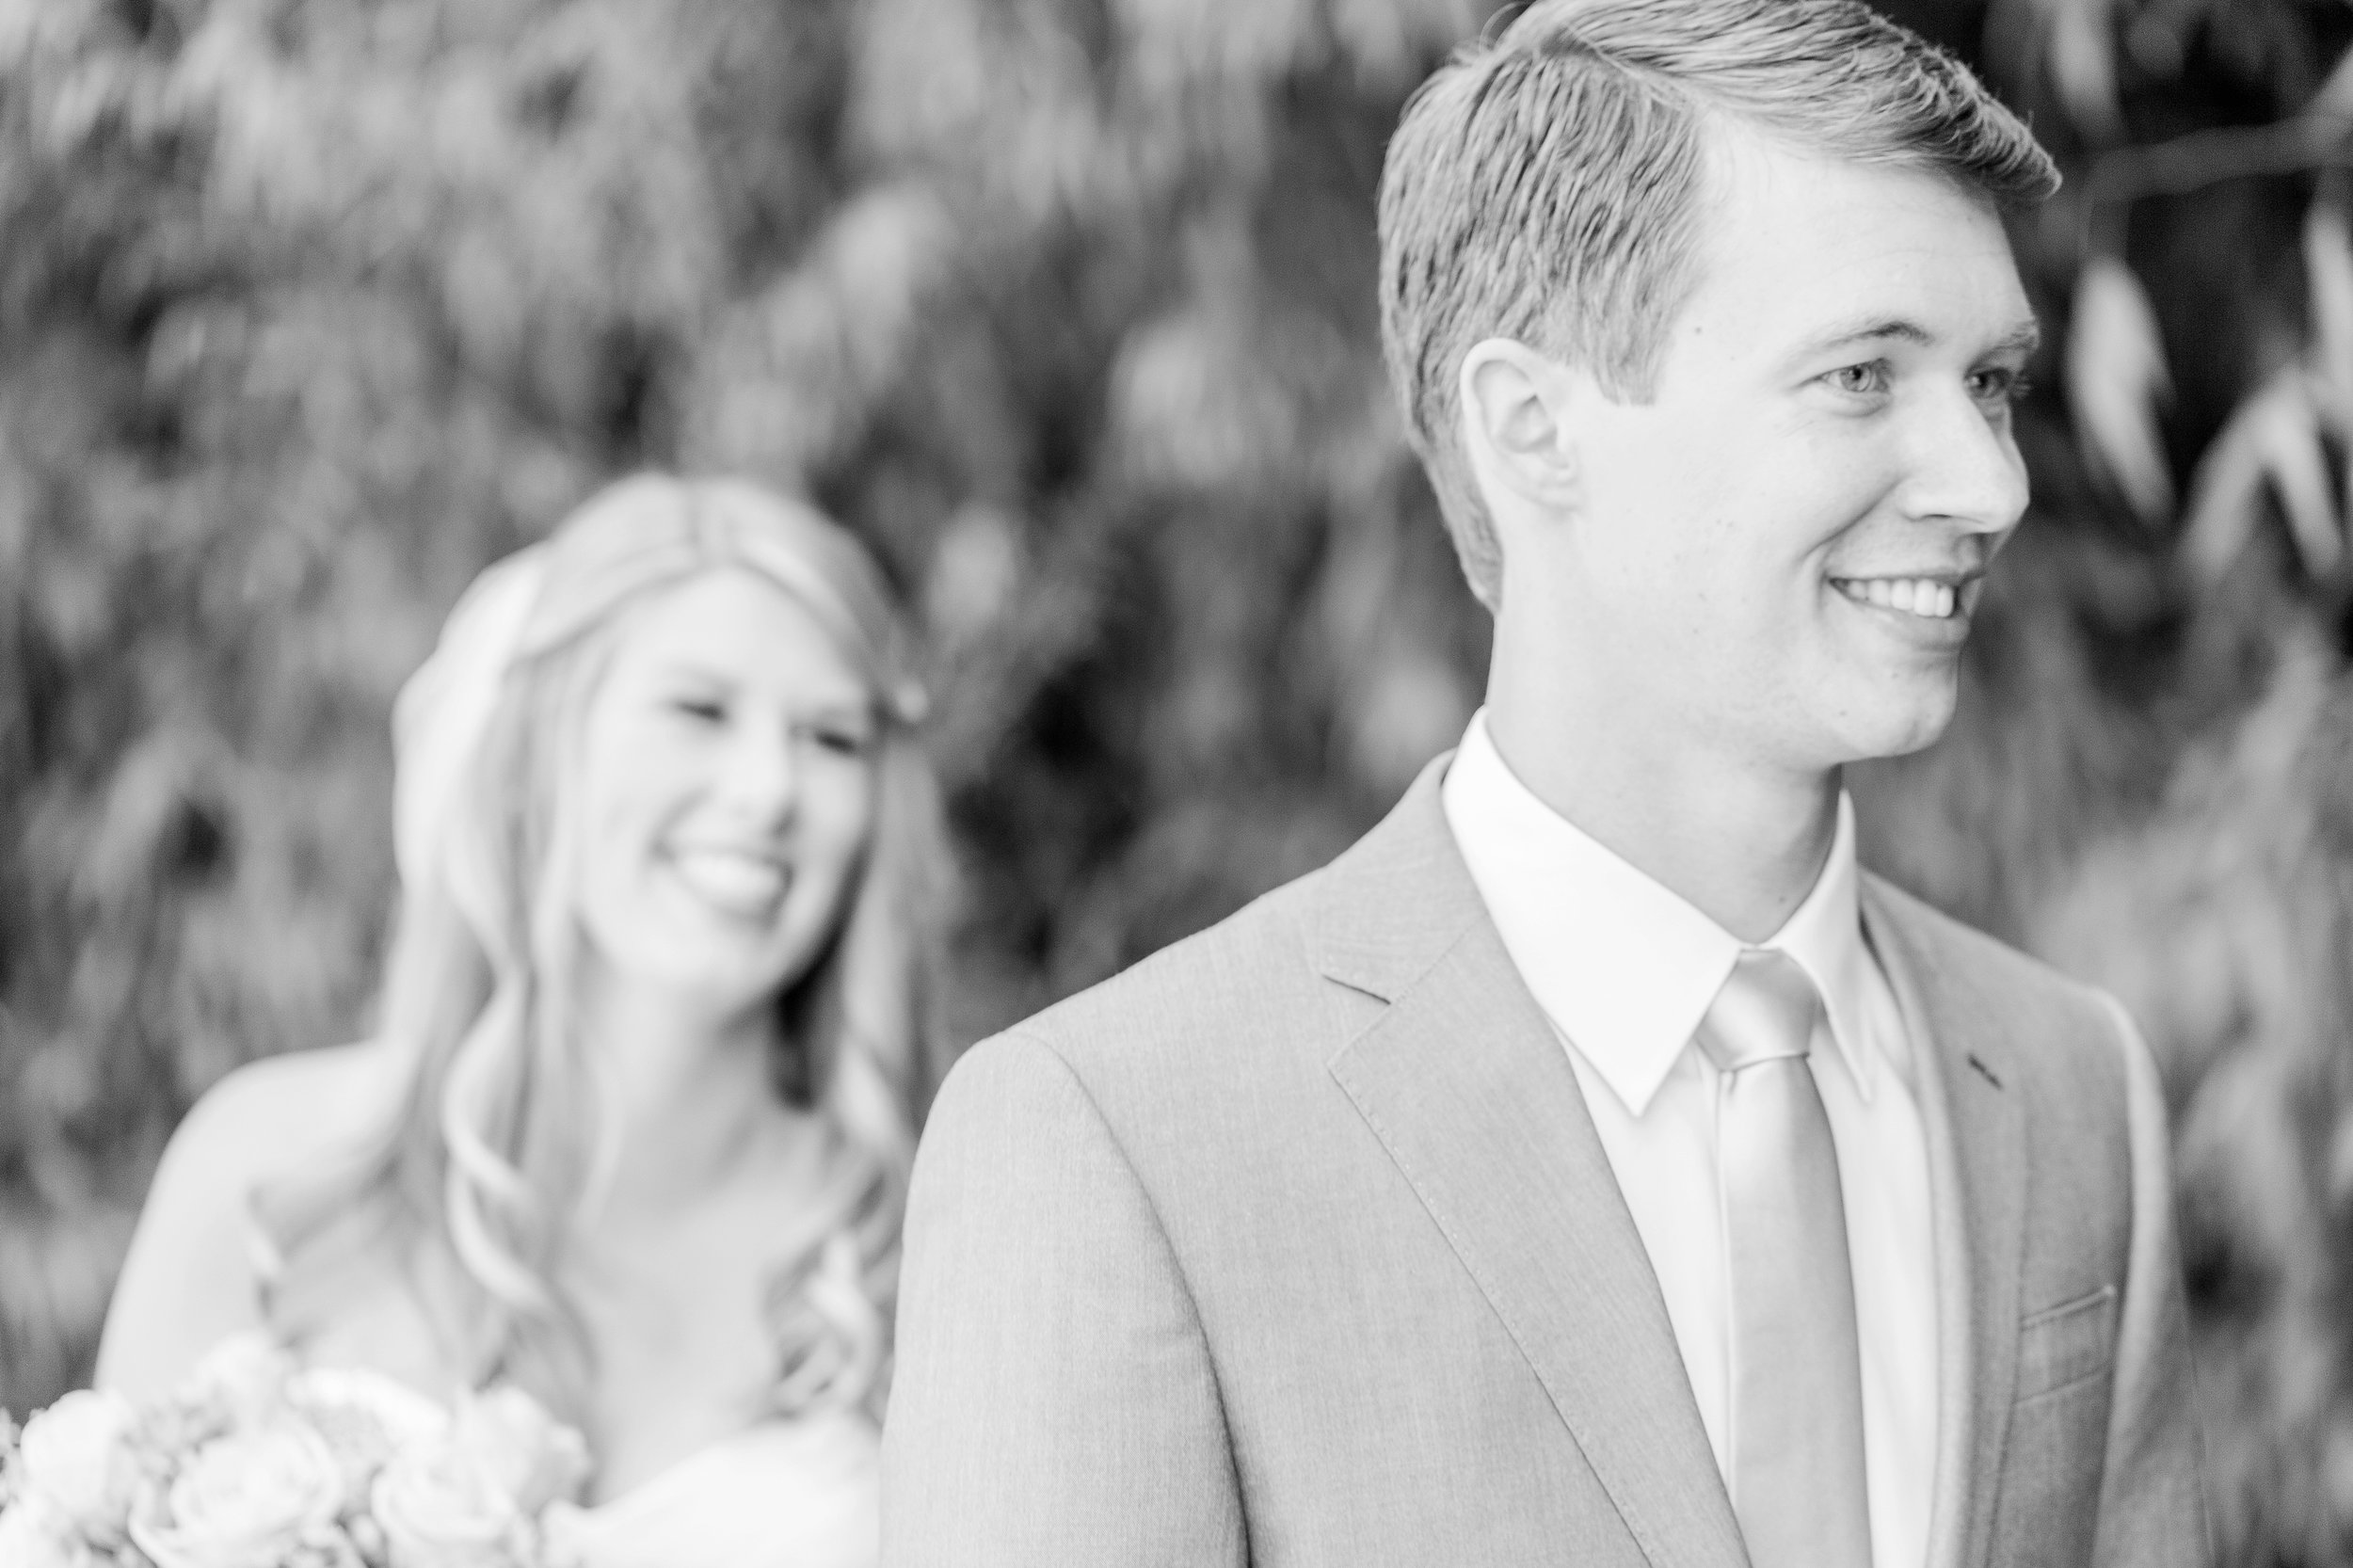 seattle wedding photographer_0236.jpg